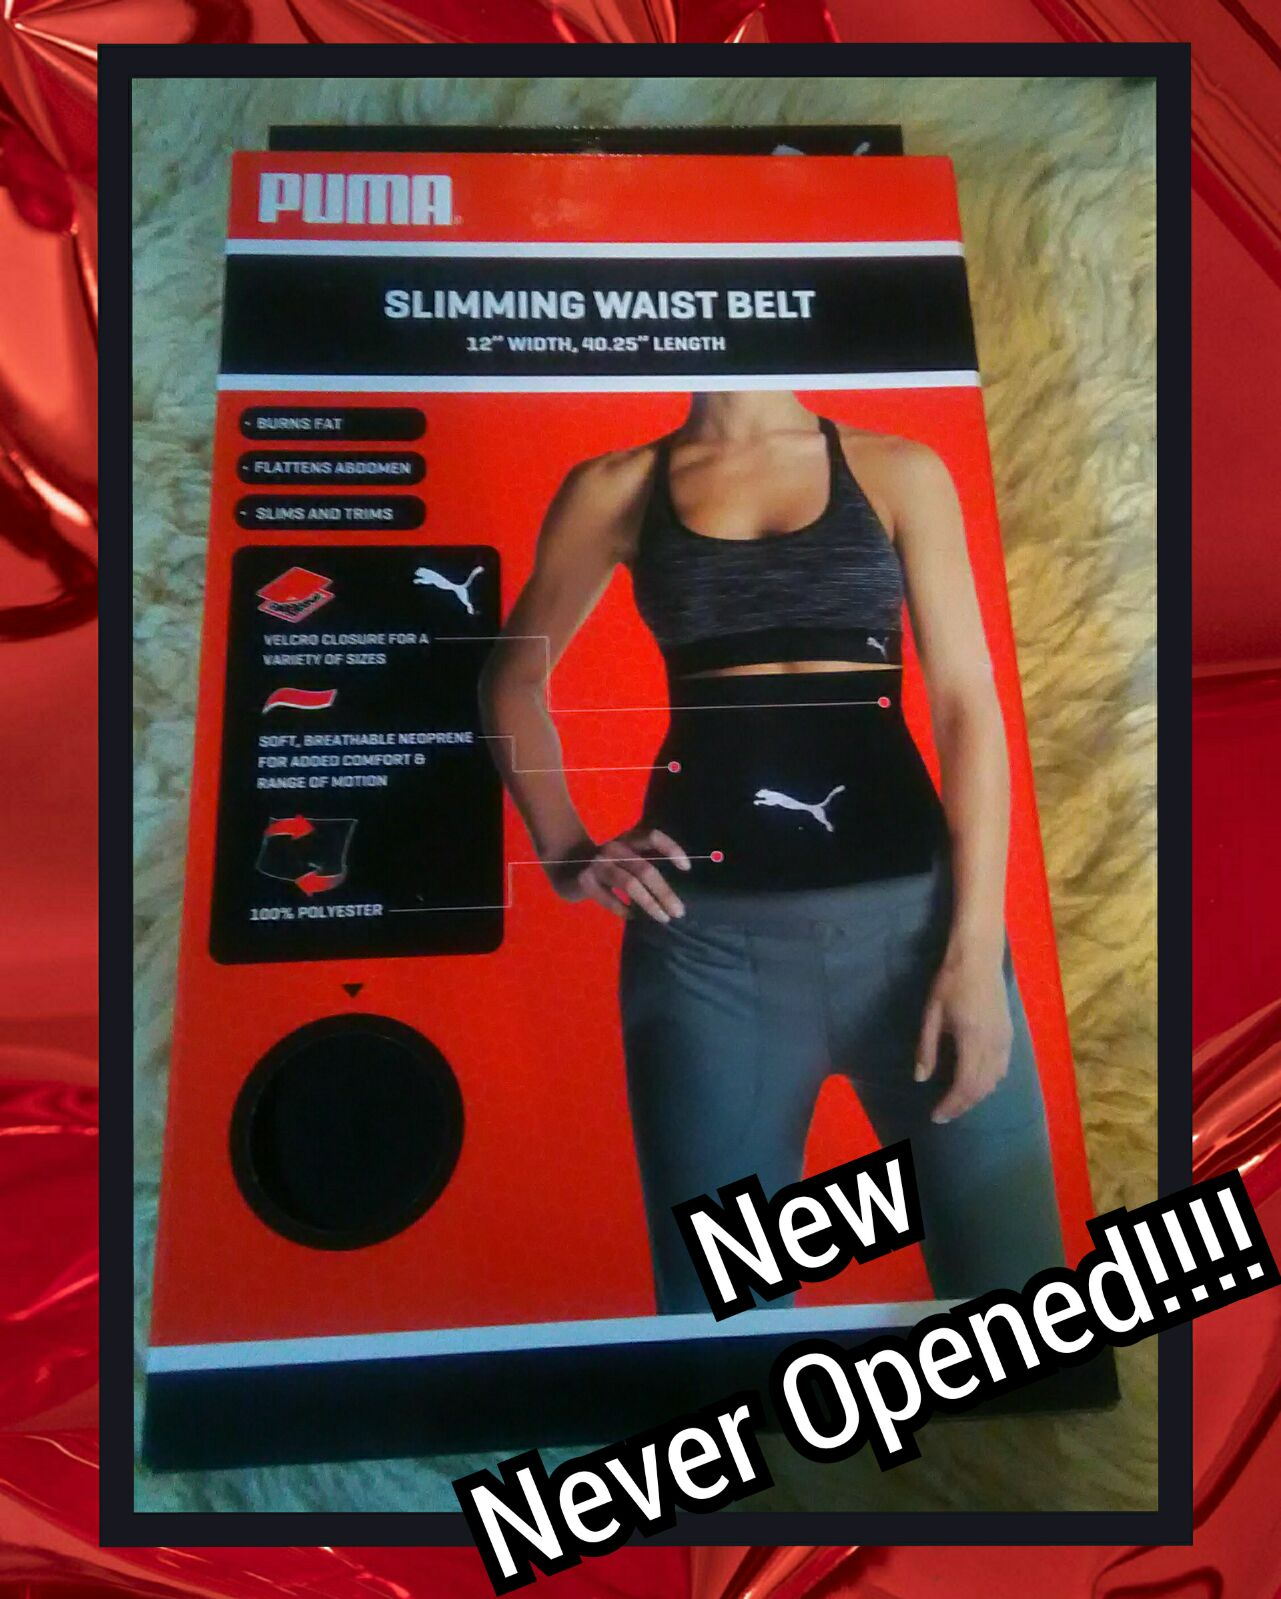 Puma Waist Slimming Belt